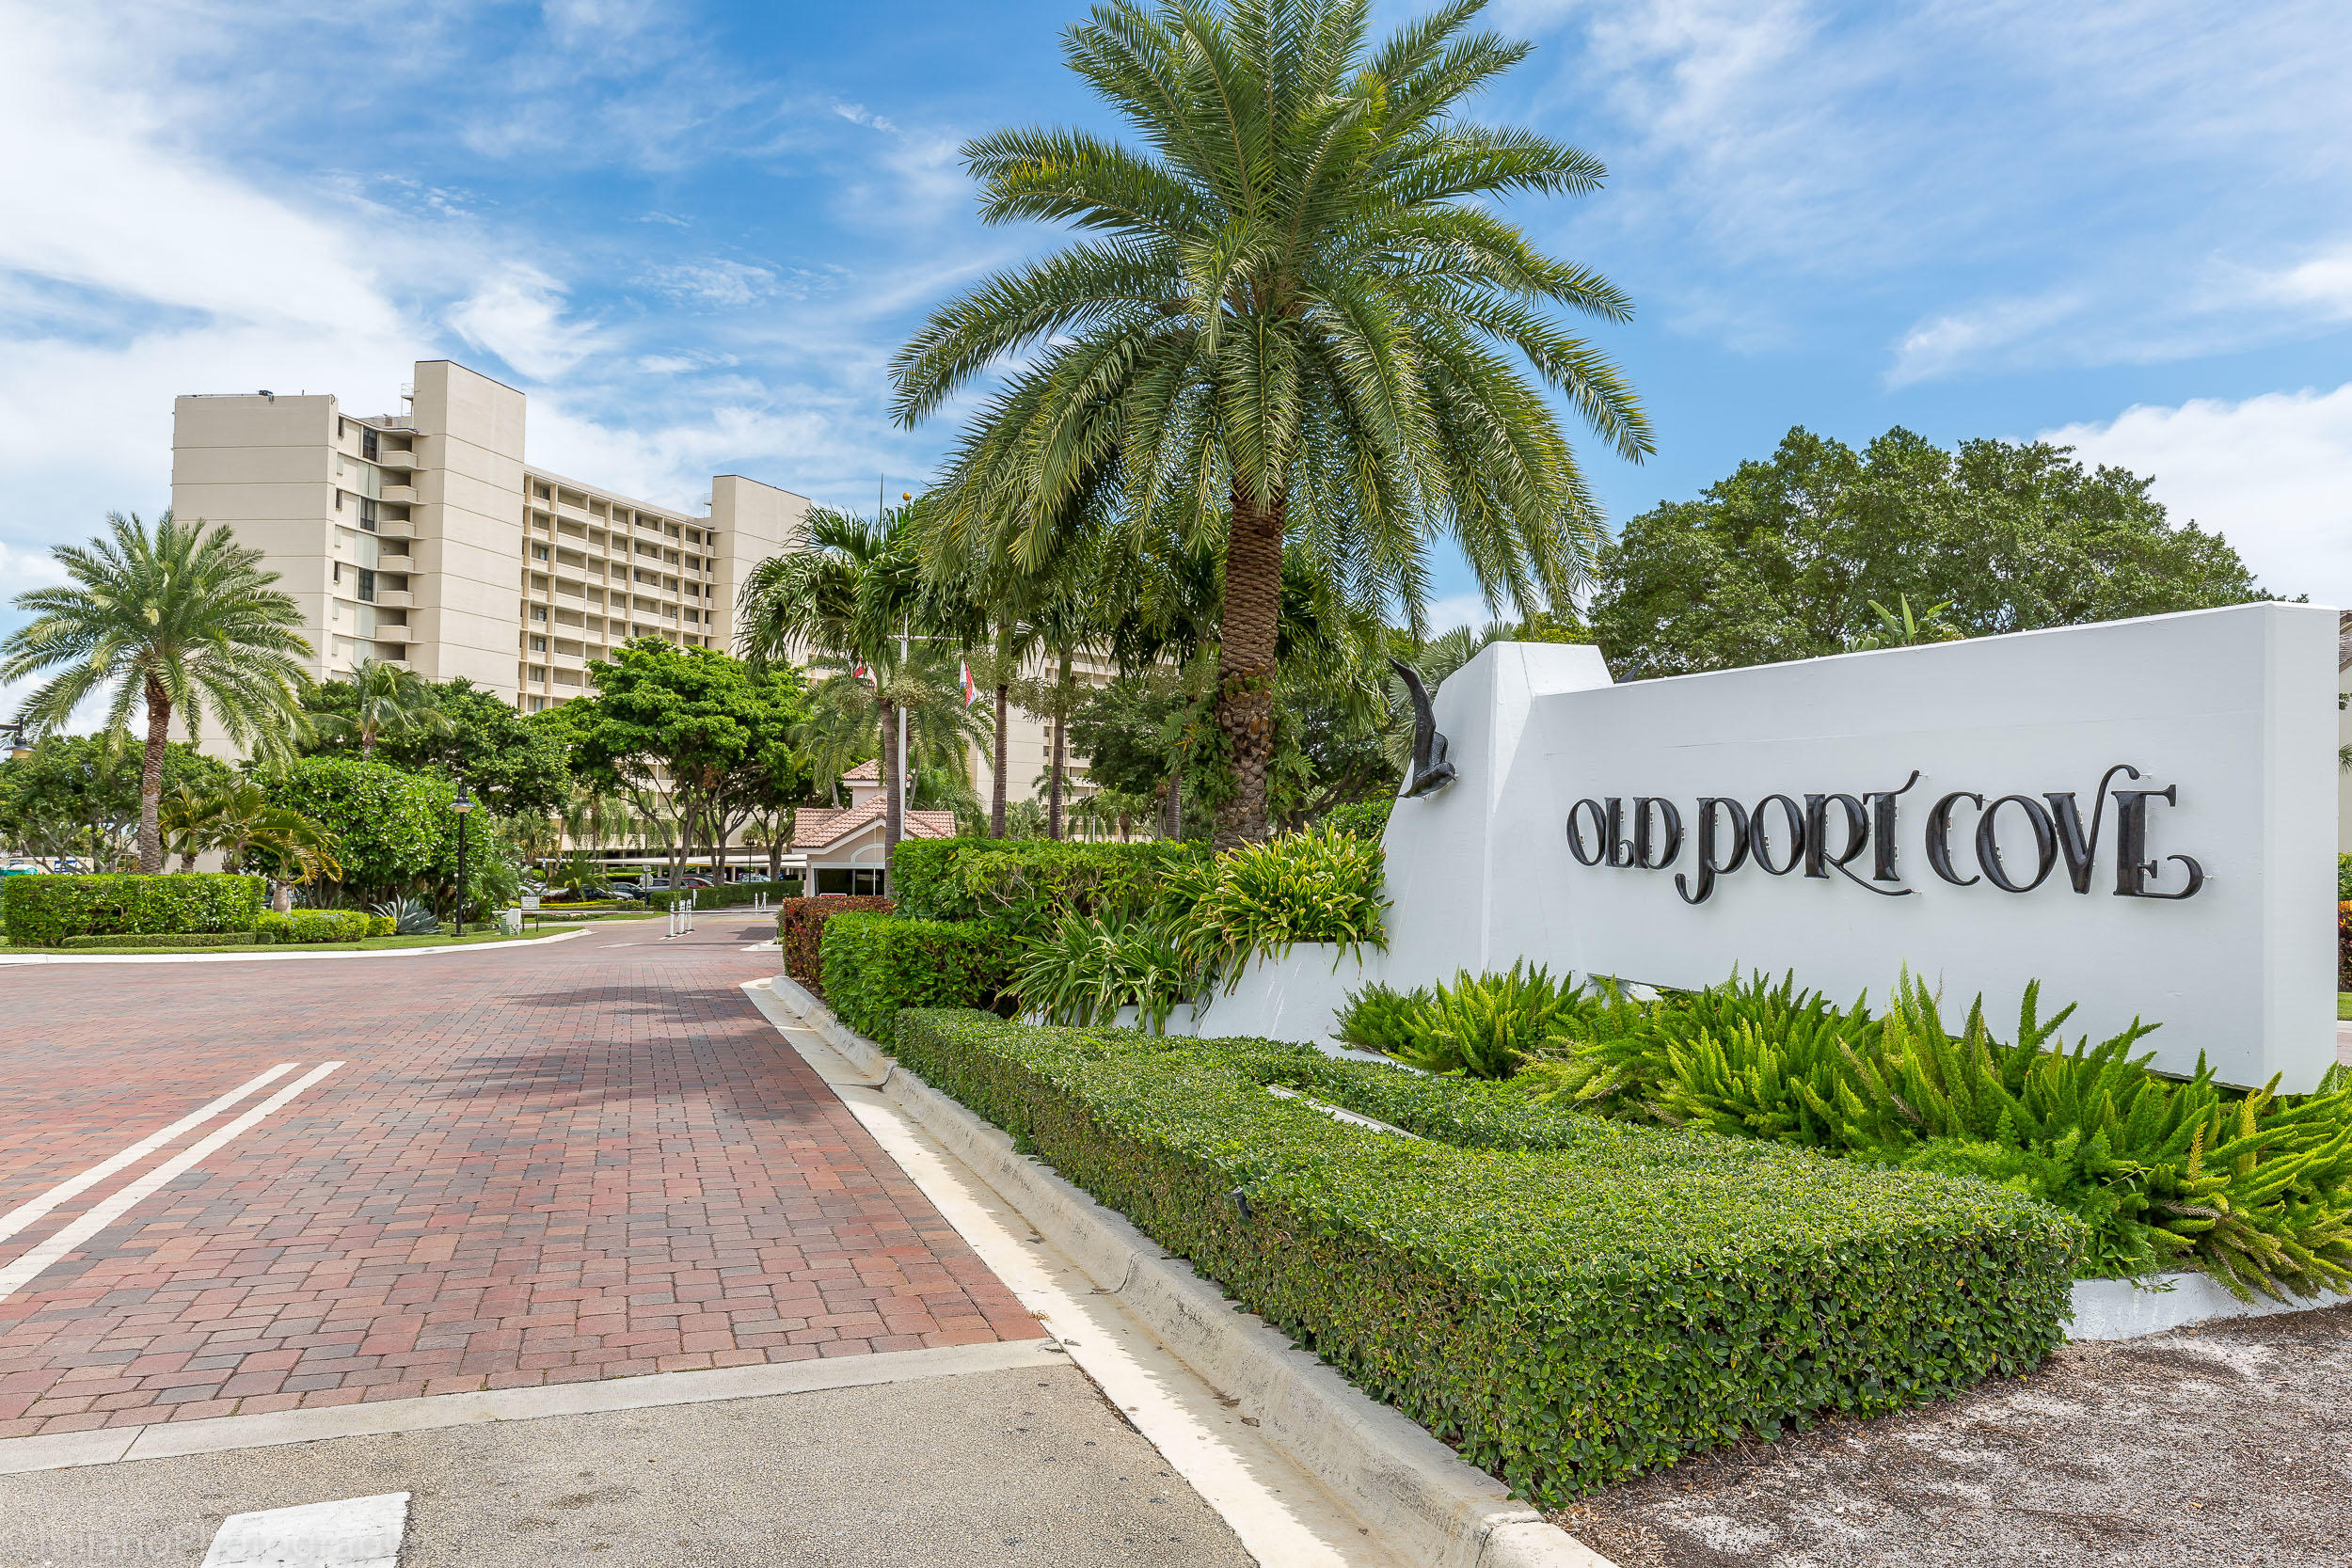 OLD PORT COVE LAKE POINT TOWERCONDO L-1